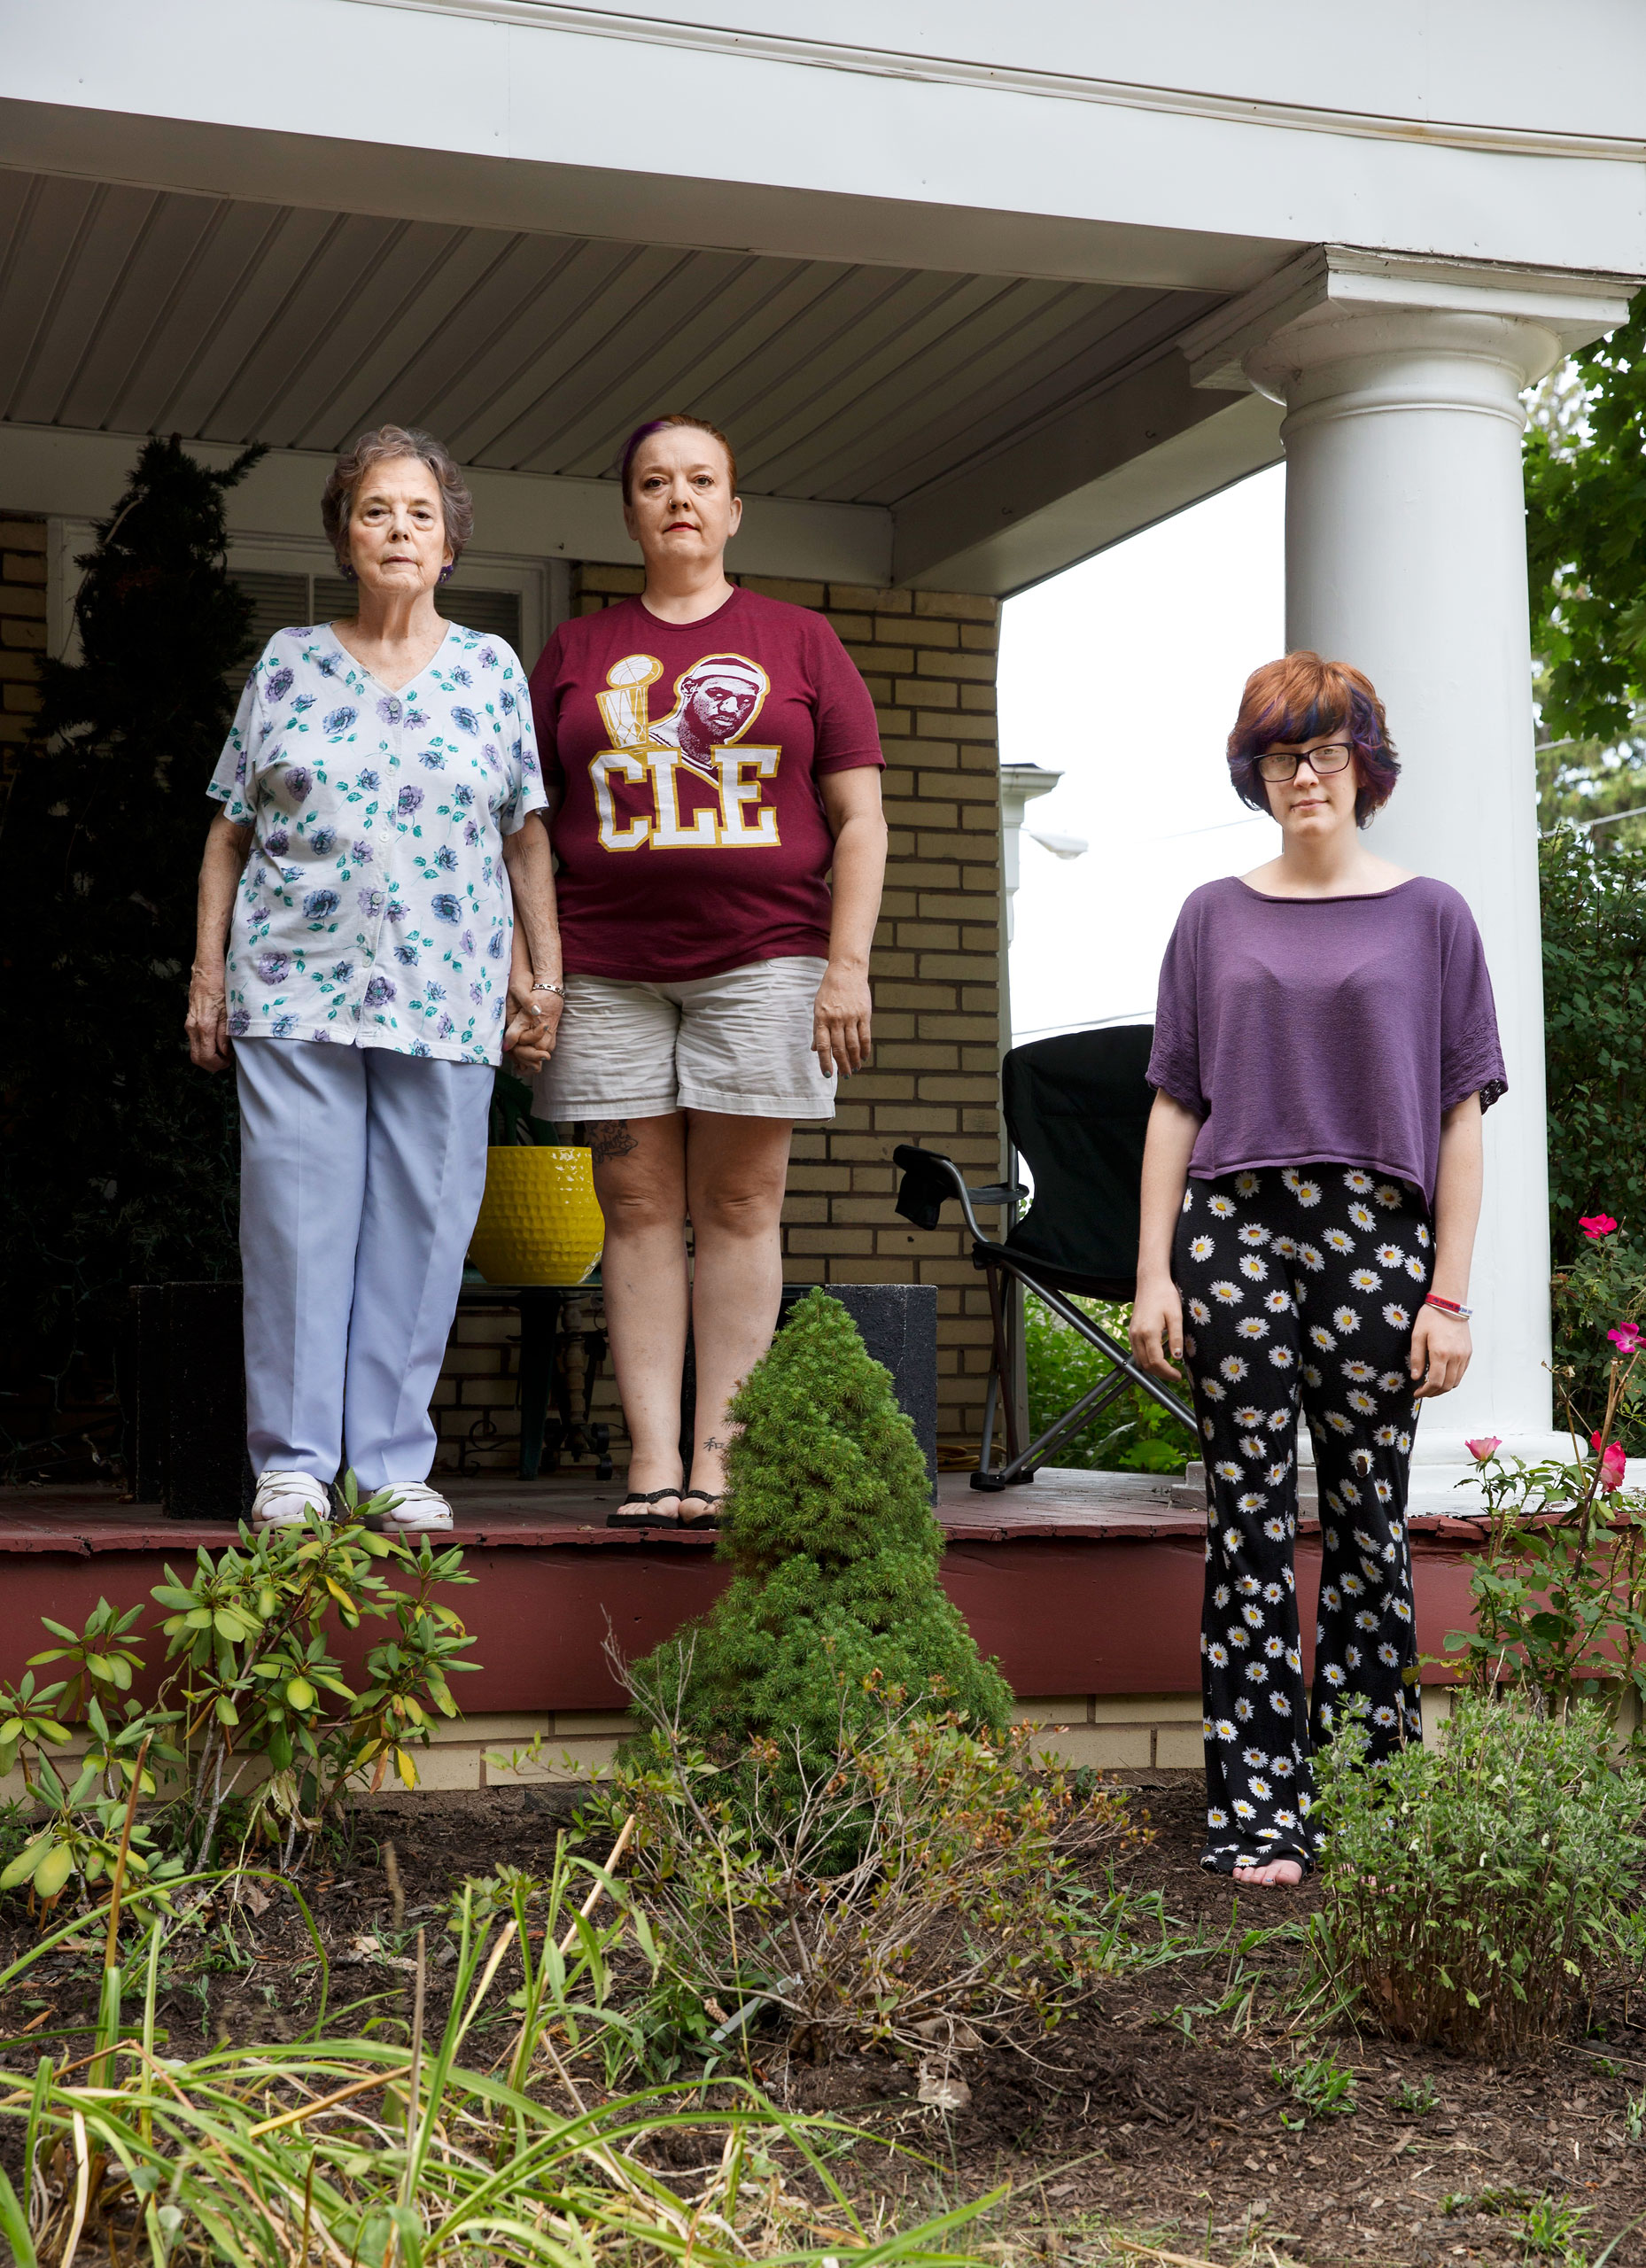 Carolyn Smith, 78; Cindy Smith, 49; and Josephine Sicking, 18, in front of Cindy's home in Cleveland Heights, Ohio